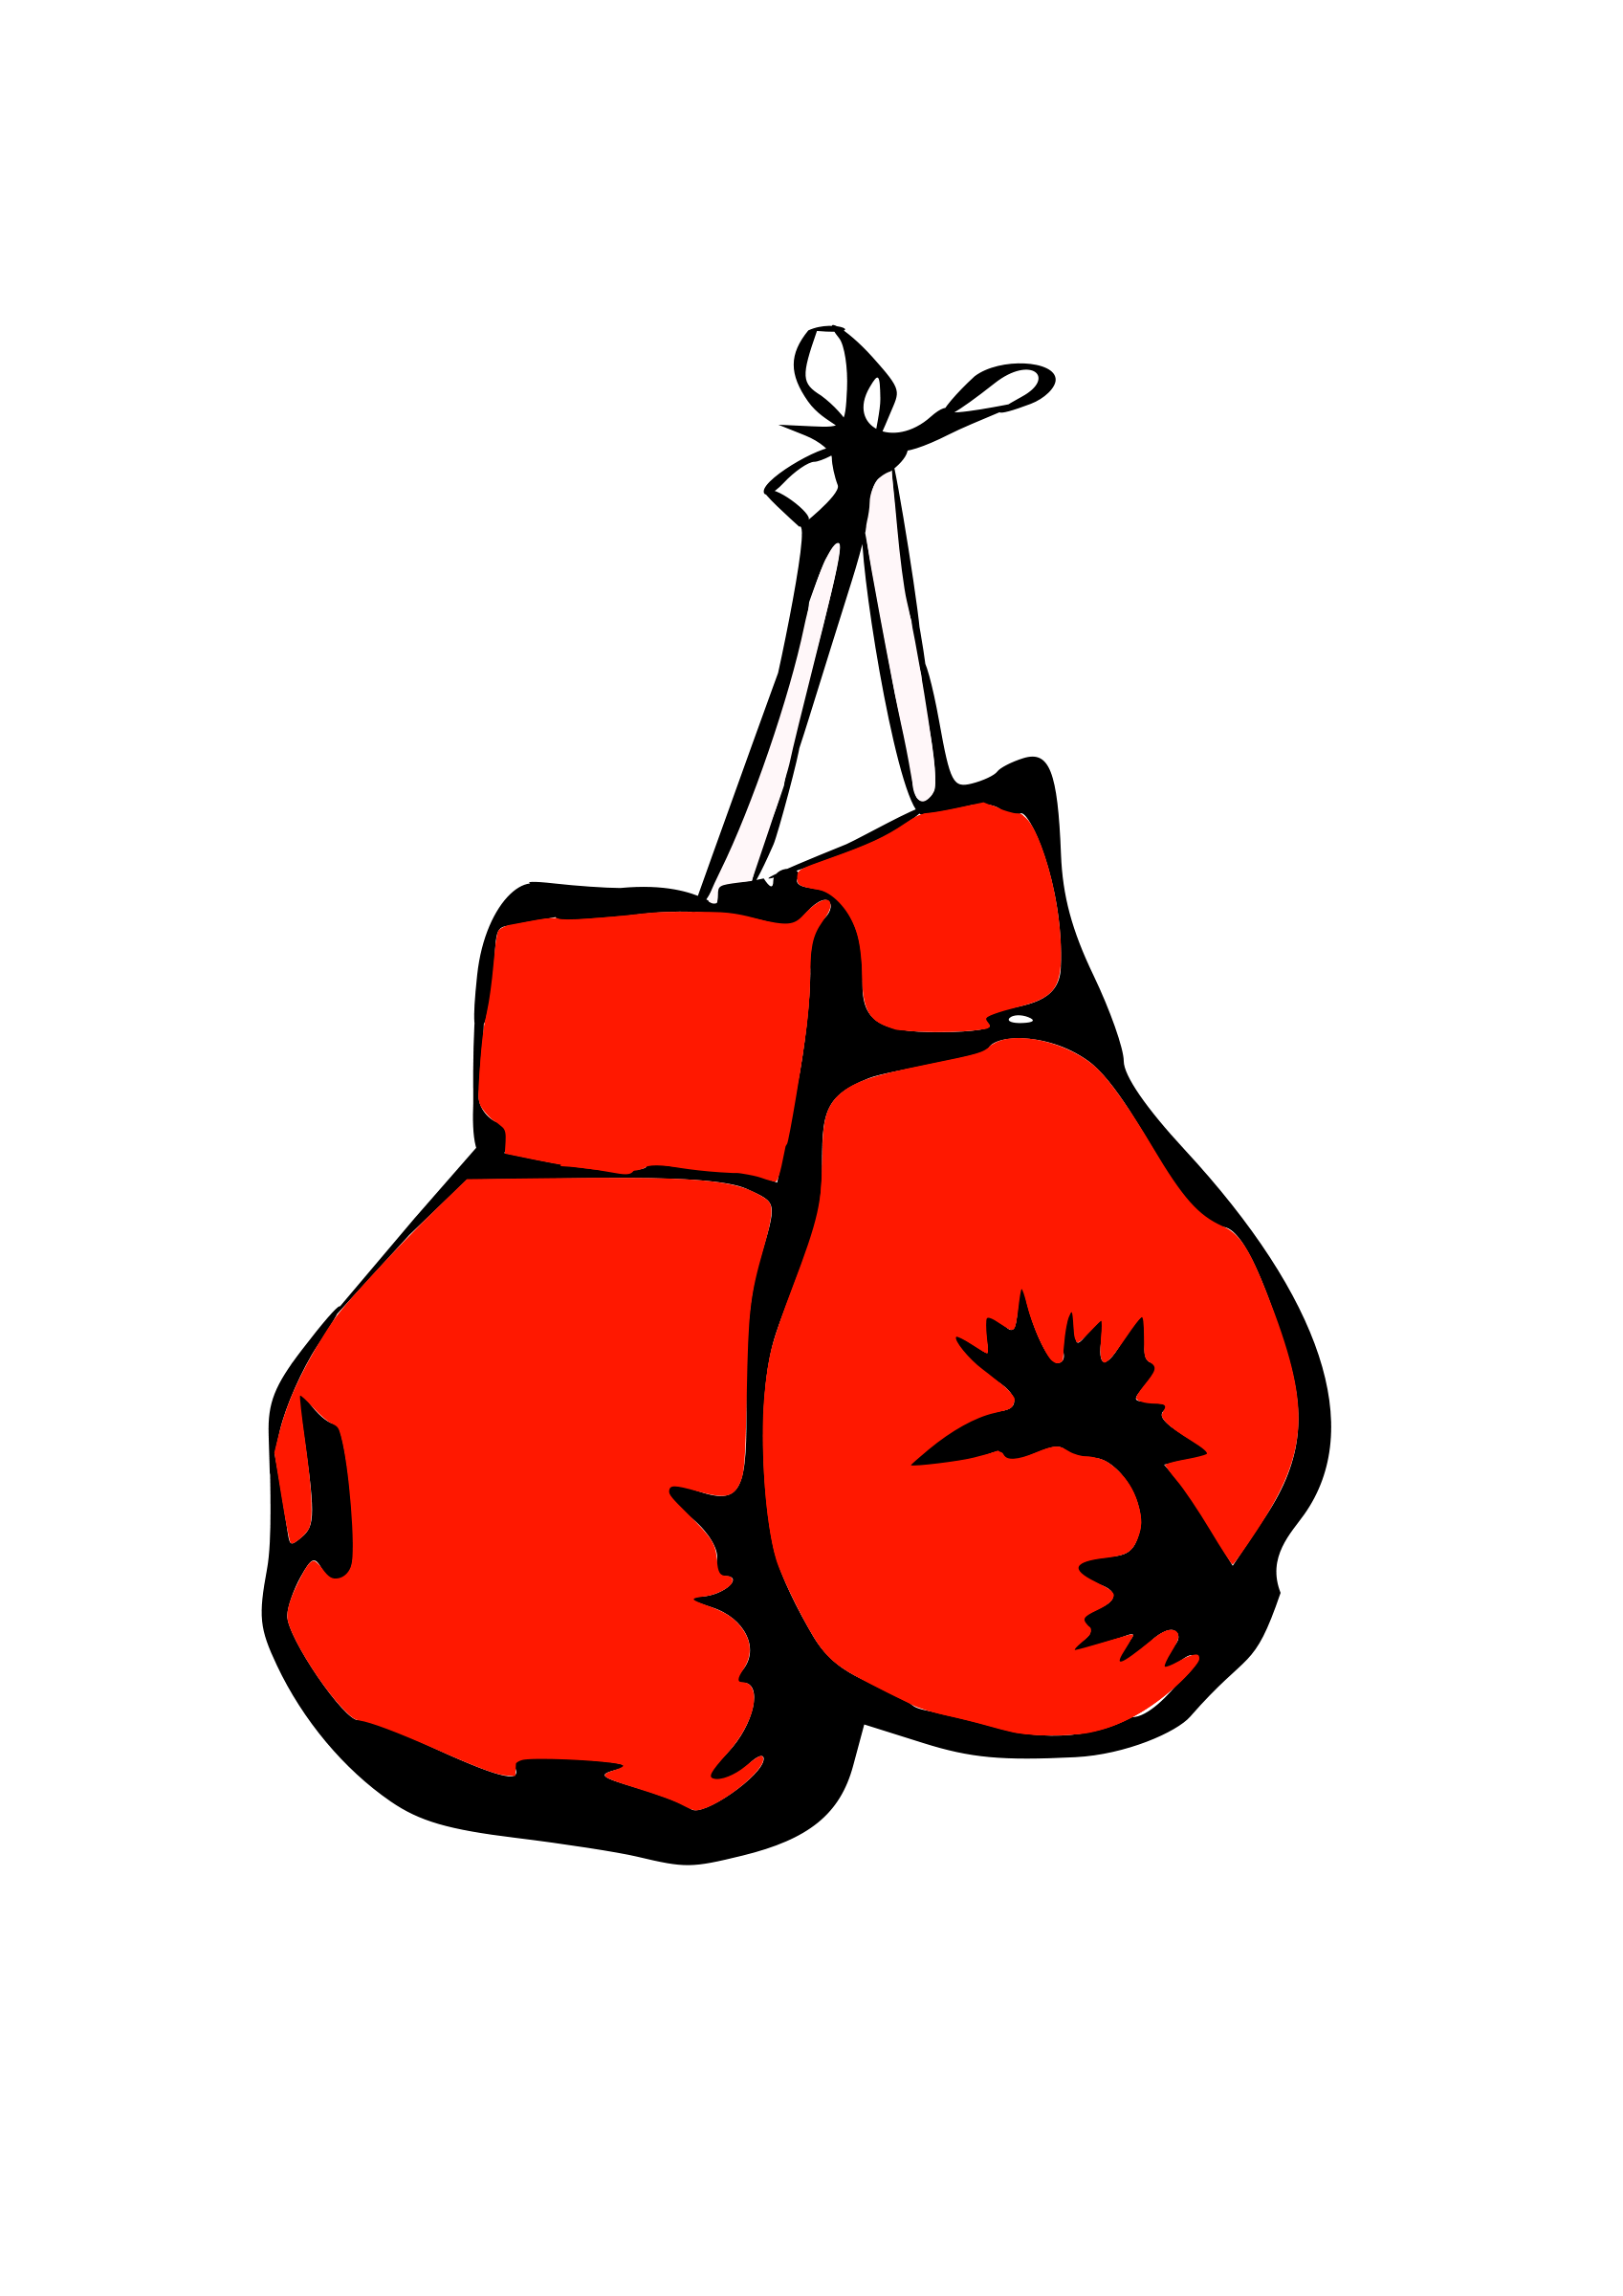 Boxing Glove Clip Art - Cliparts.co